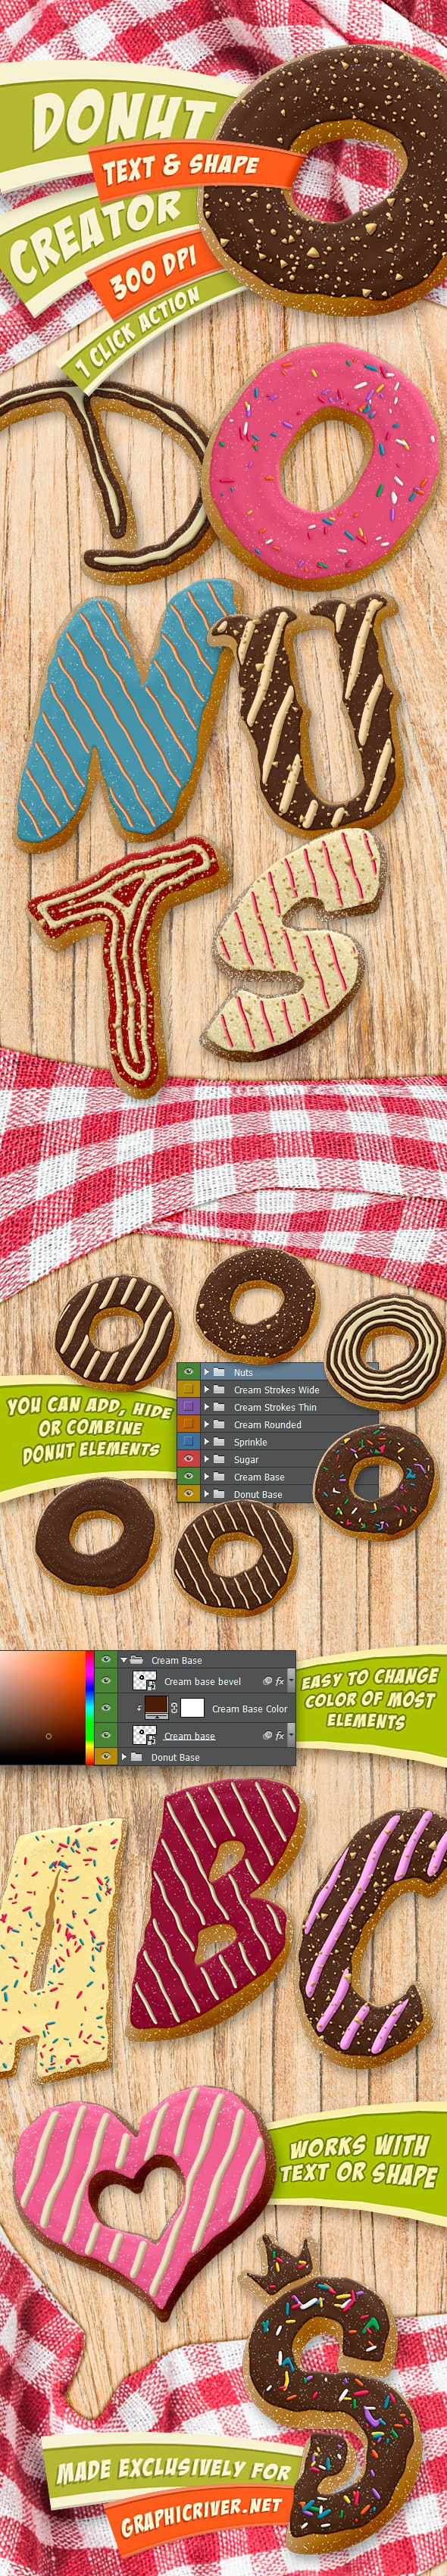 Donut Creator - Text and Shape Action - 300 DPI - Text Effects Actions